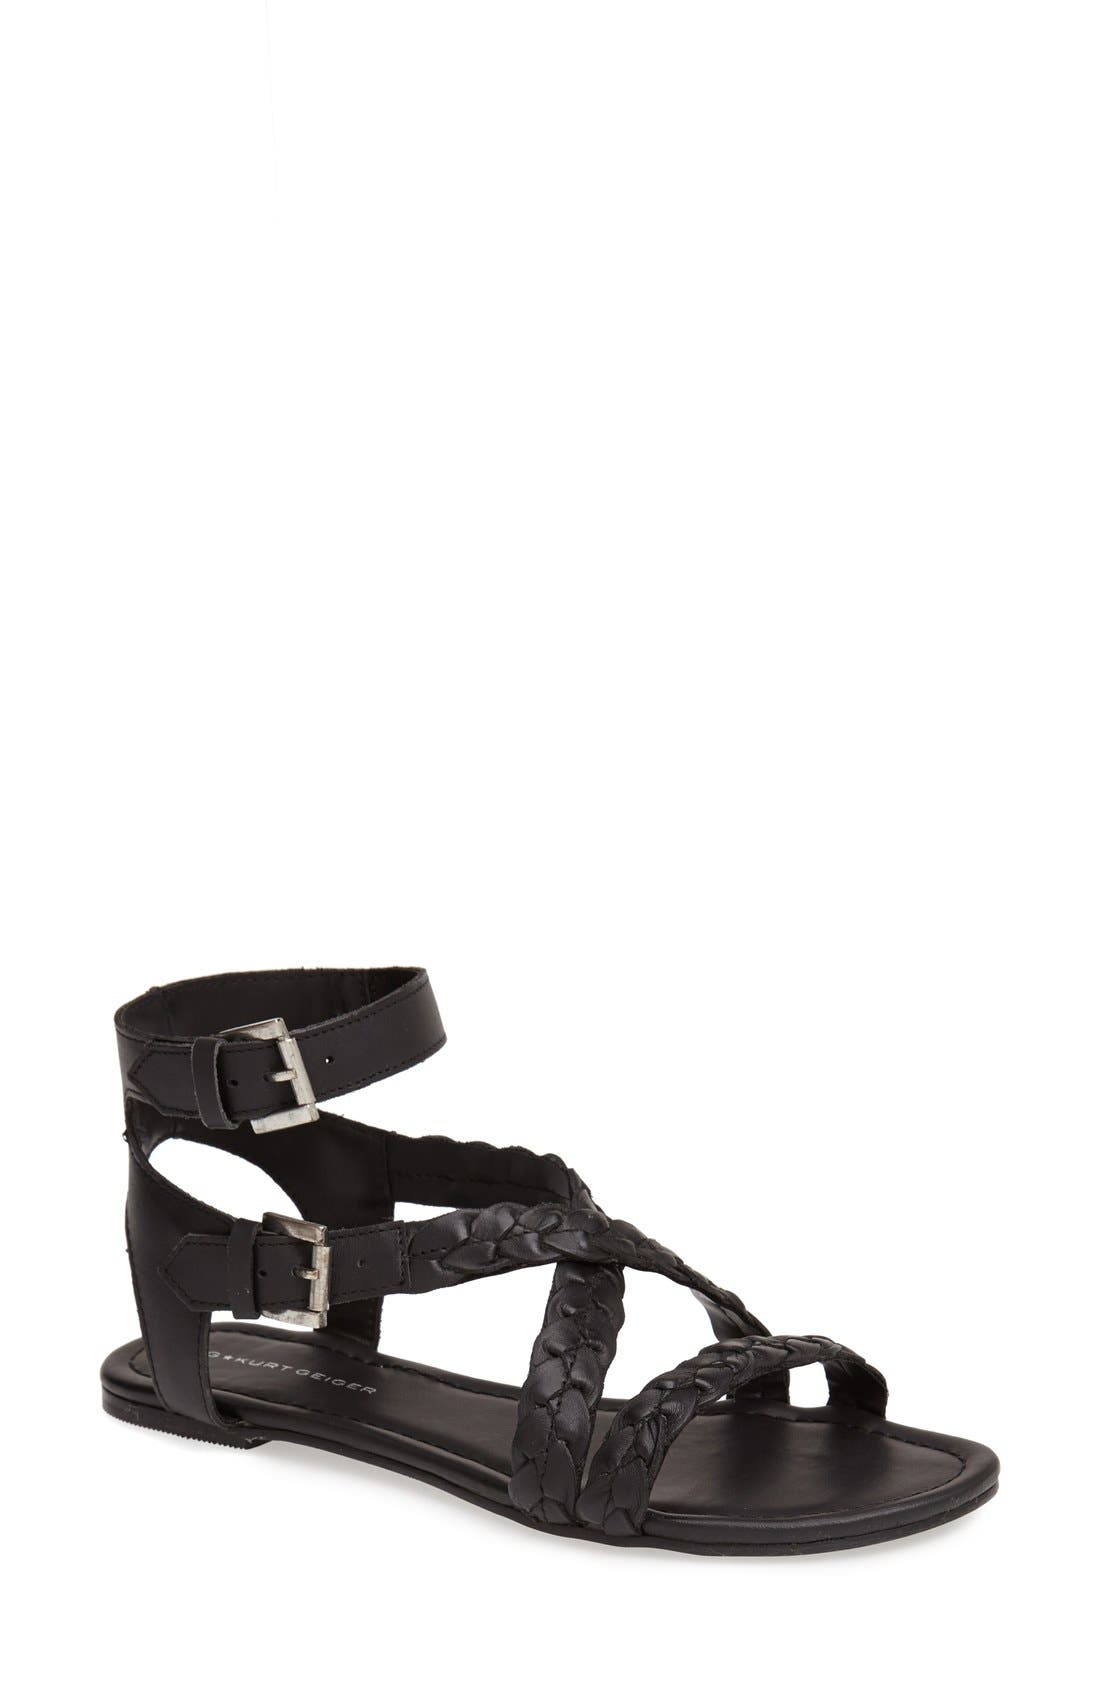 Alternate Image 1 Selected - KG Kurt Geiger 'Magnum' Sandal (Women)